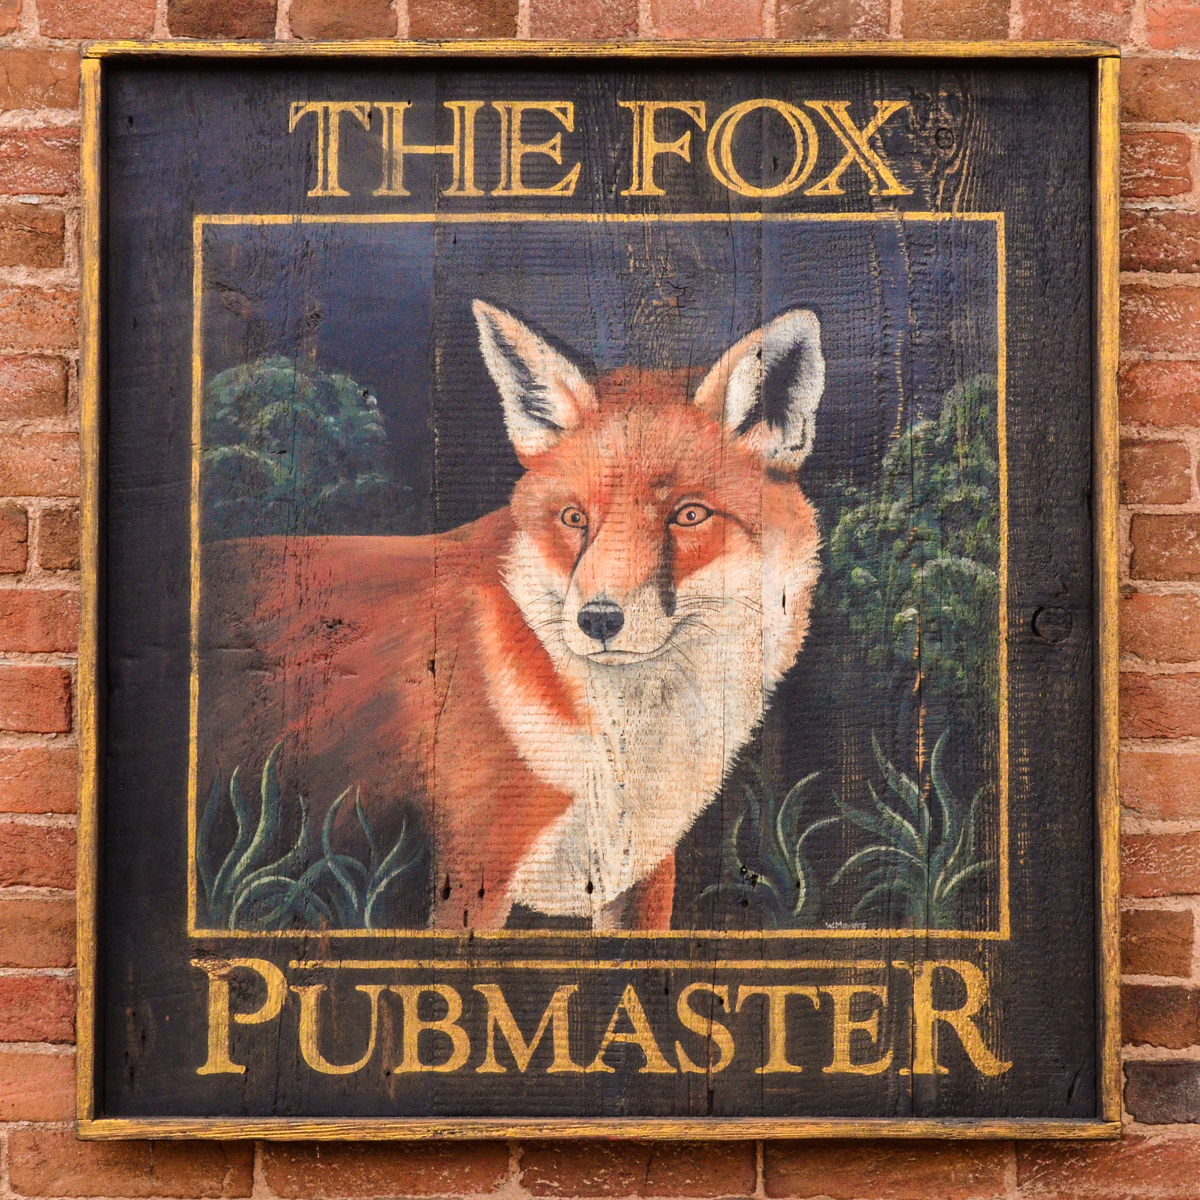 The Fox Pubmaster